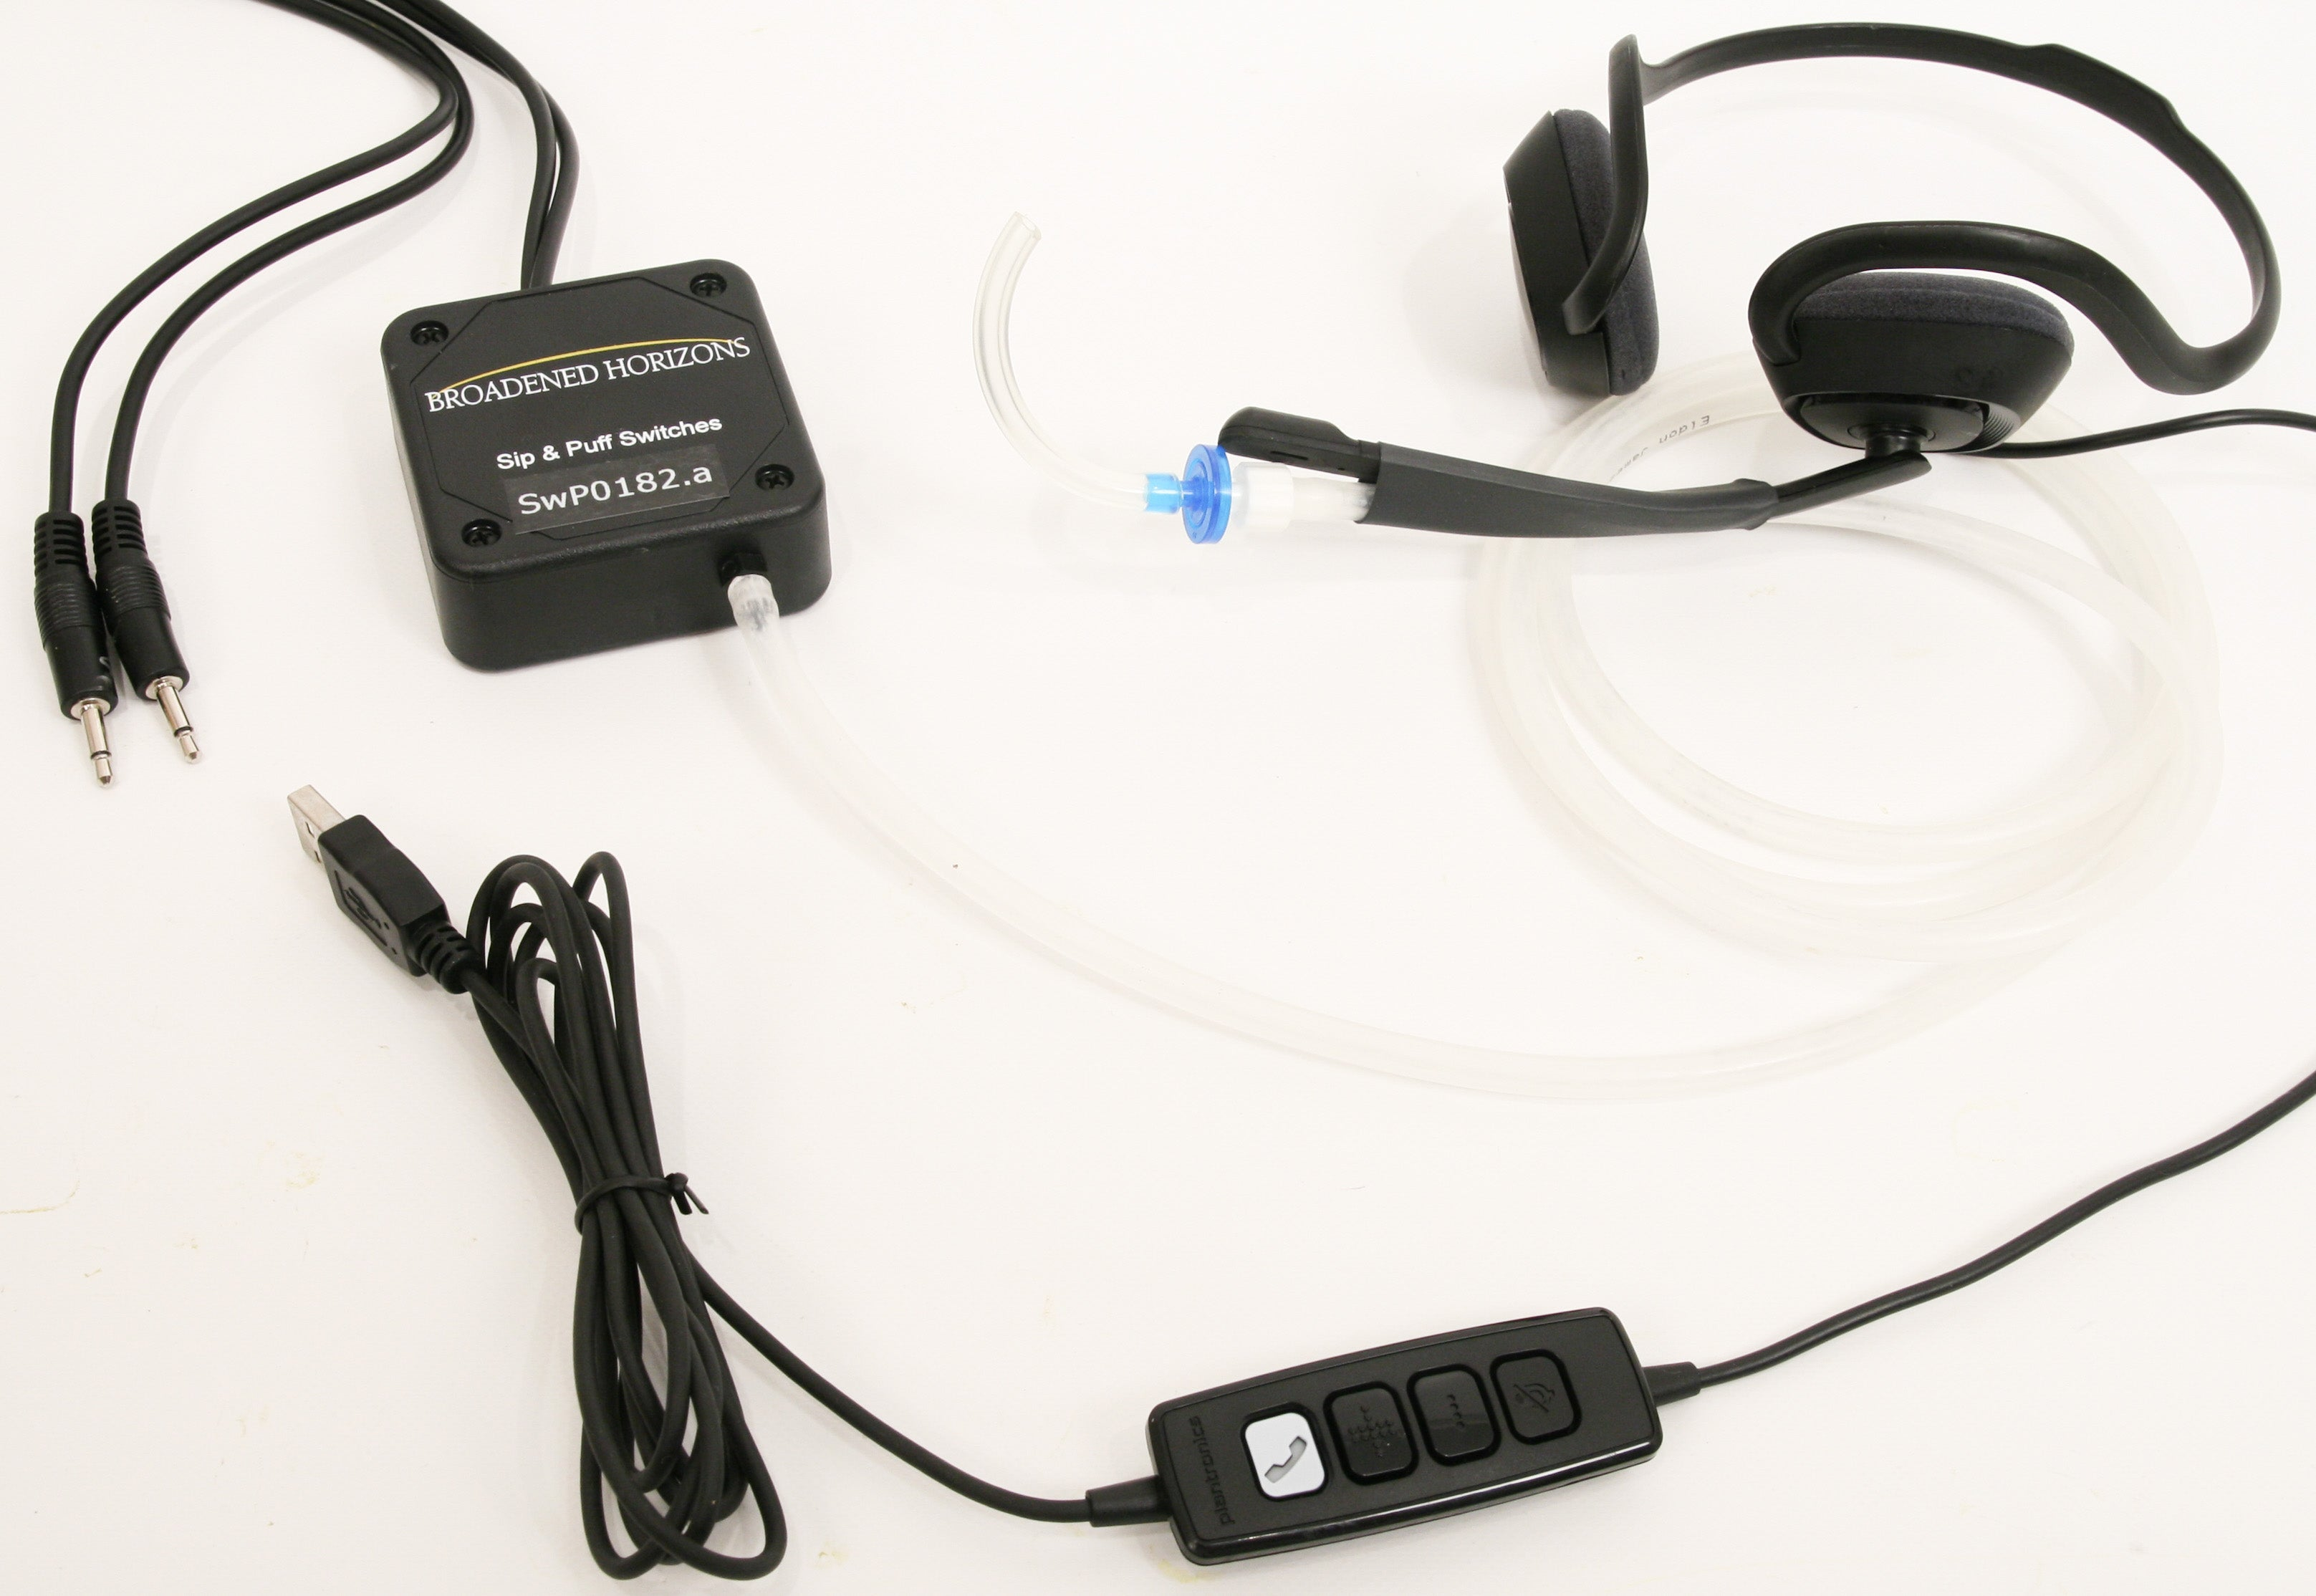 Sip-n-Puff Behind-the-Neck USB Headset and Switches for PC/Mac/Wii/PS3